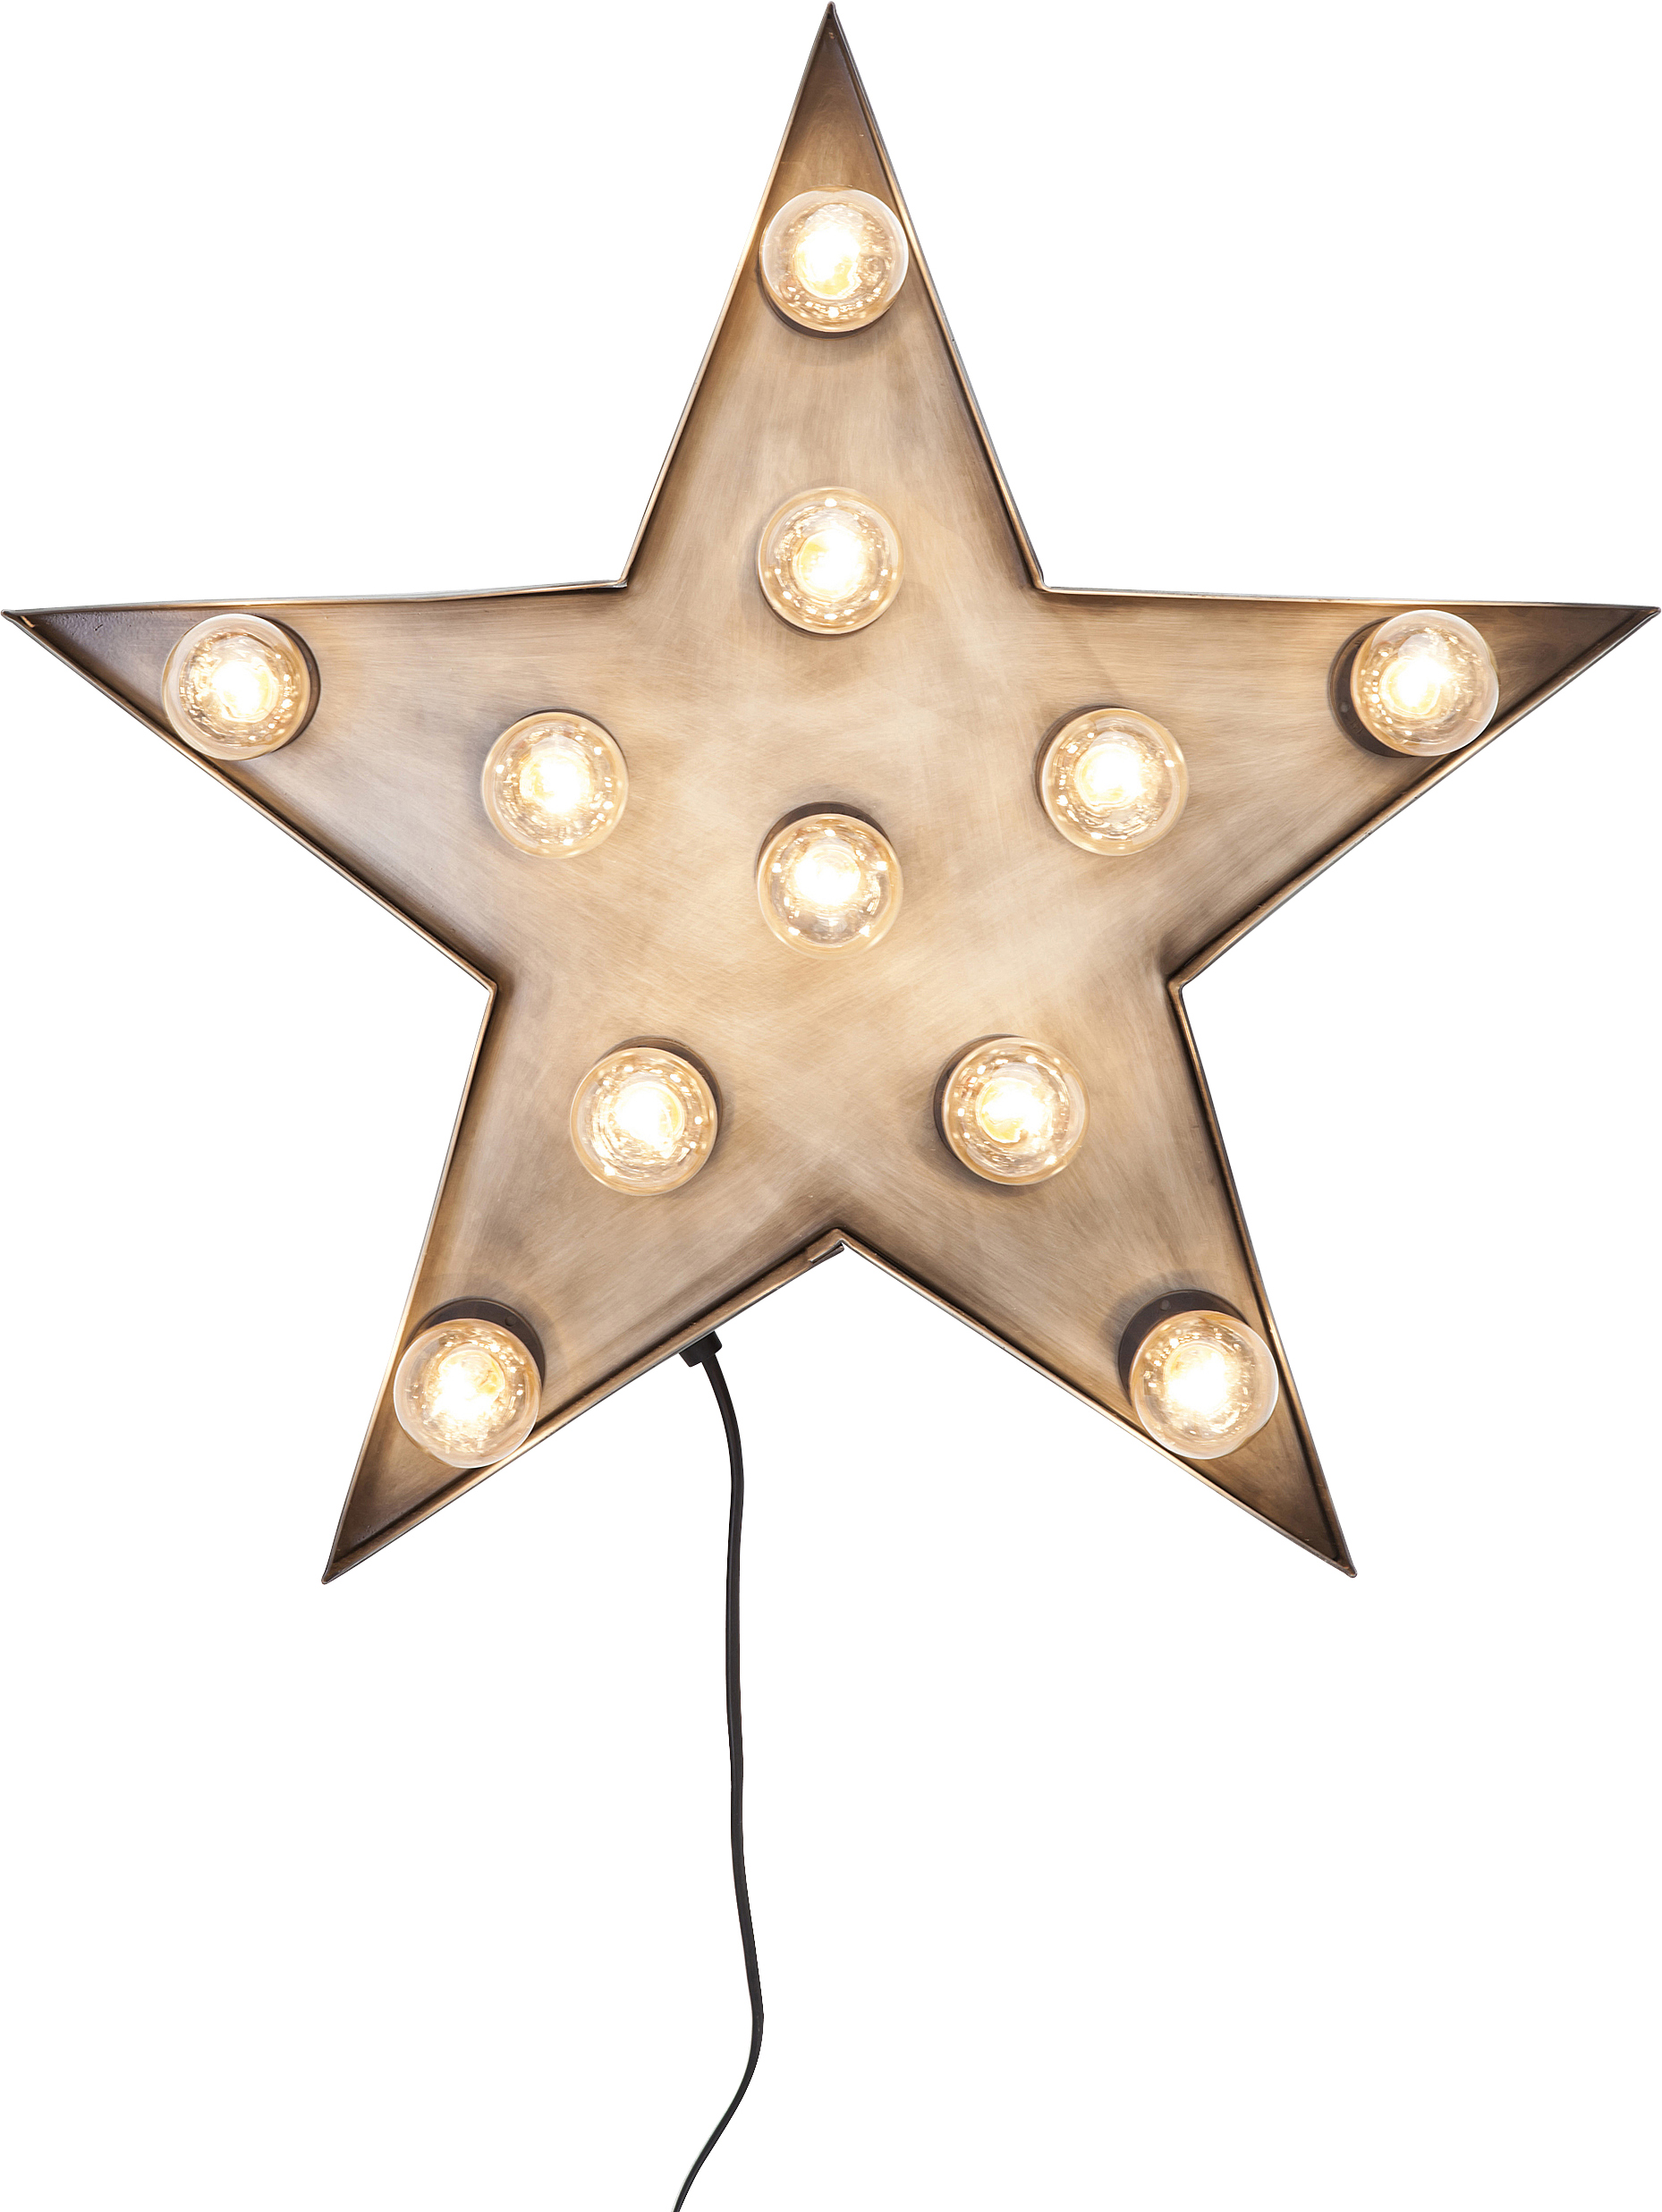 Wall Light Star 11-lite by KARE Design